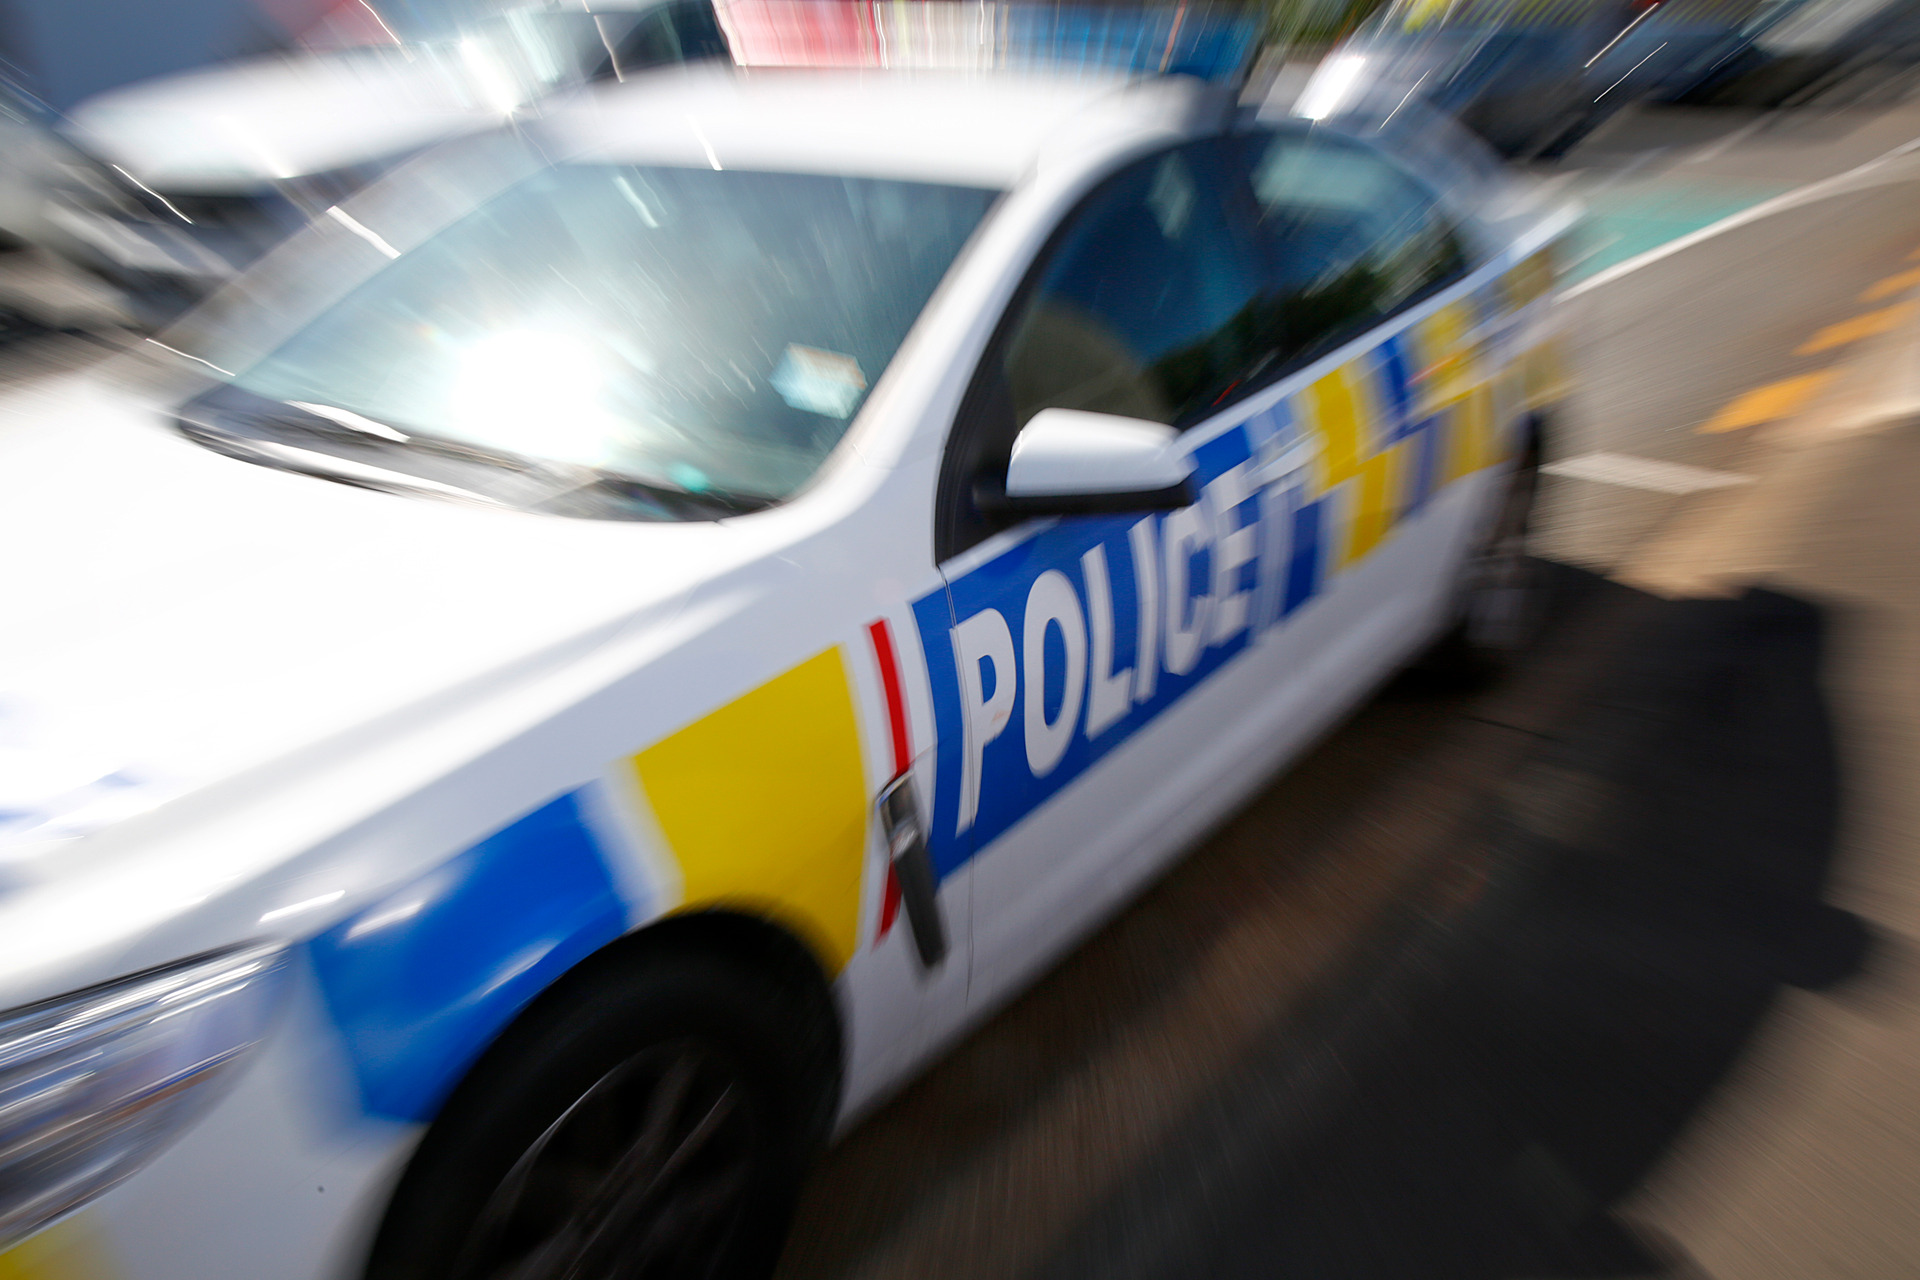 Sudden death in Lower Hutt suburb of Naenae